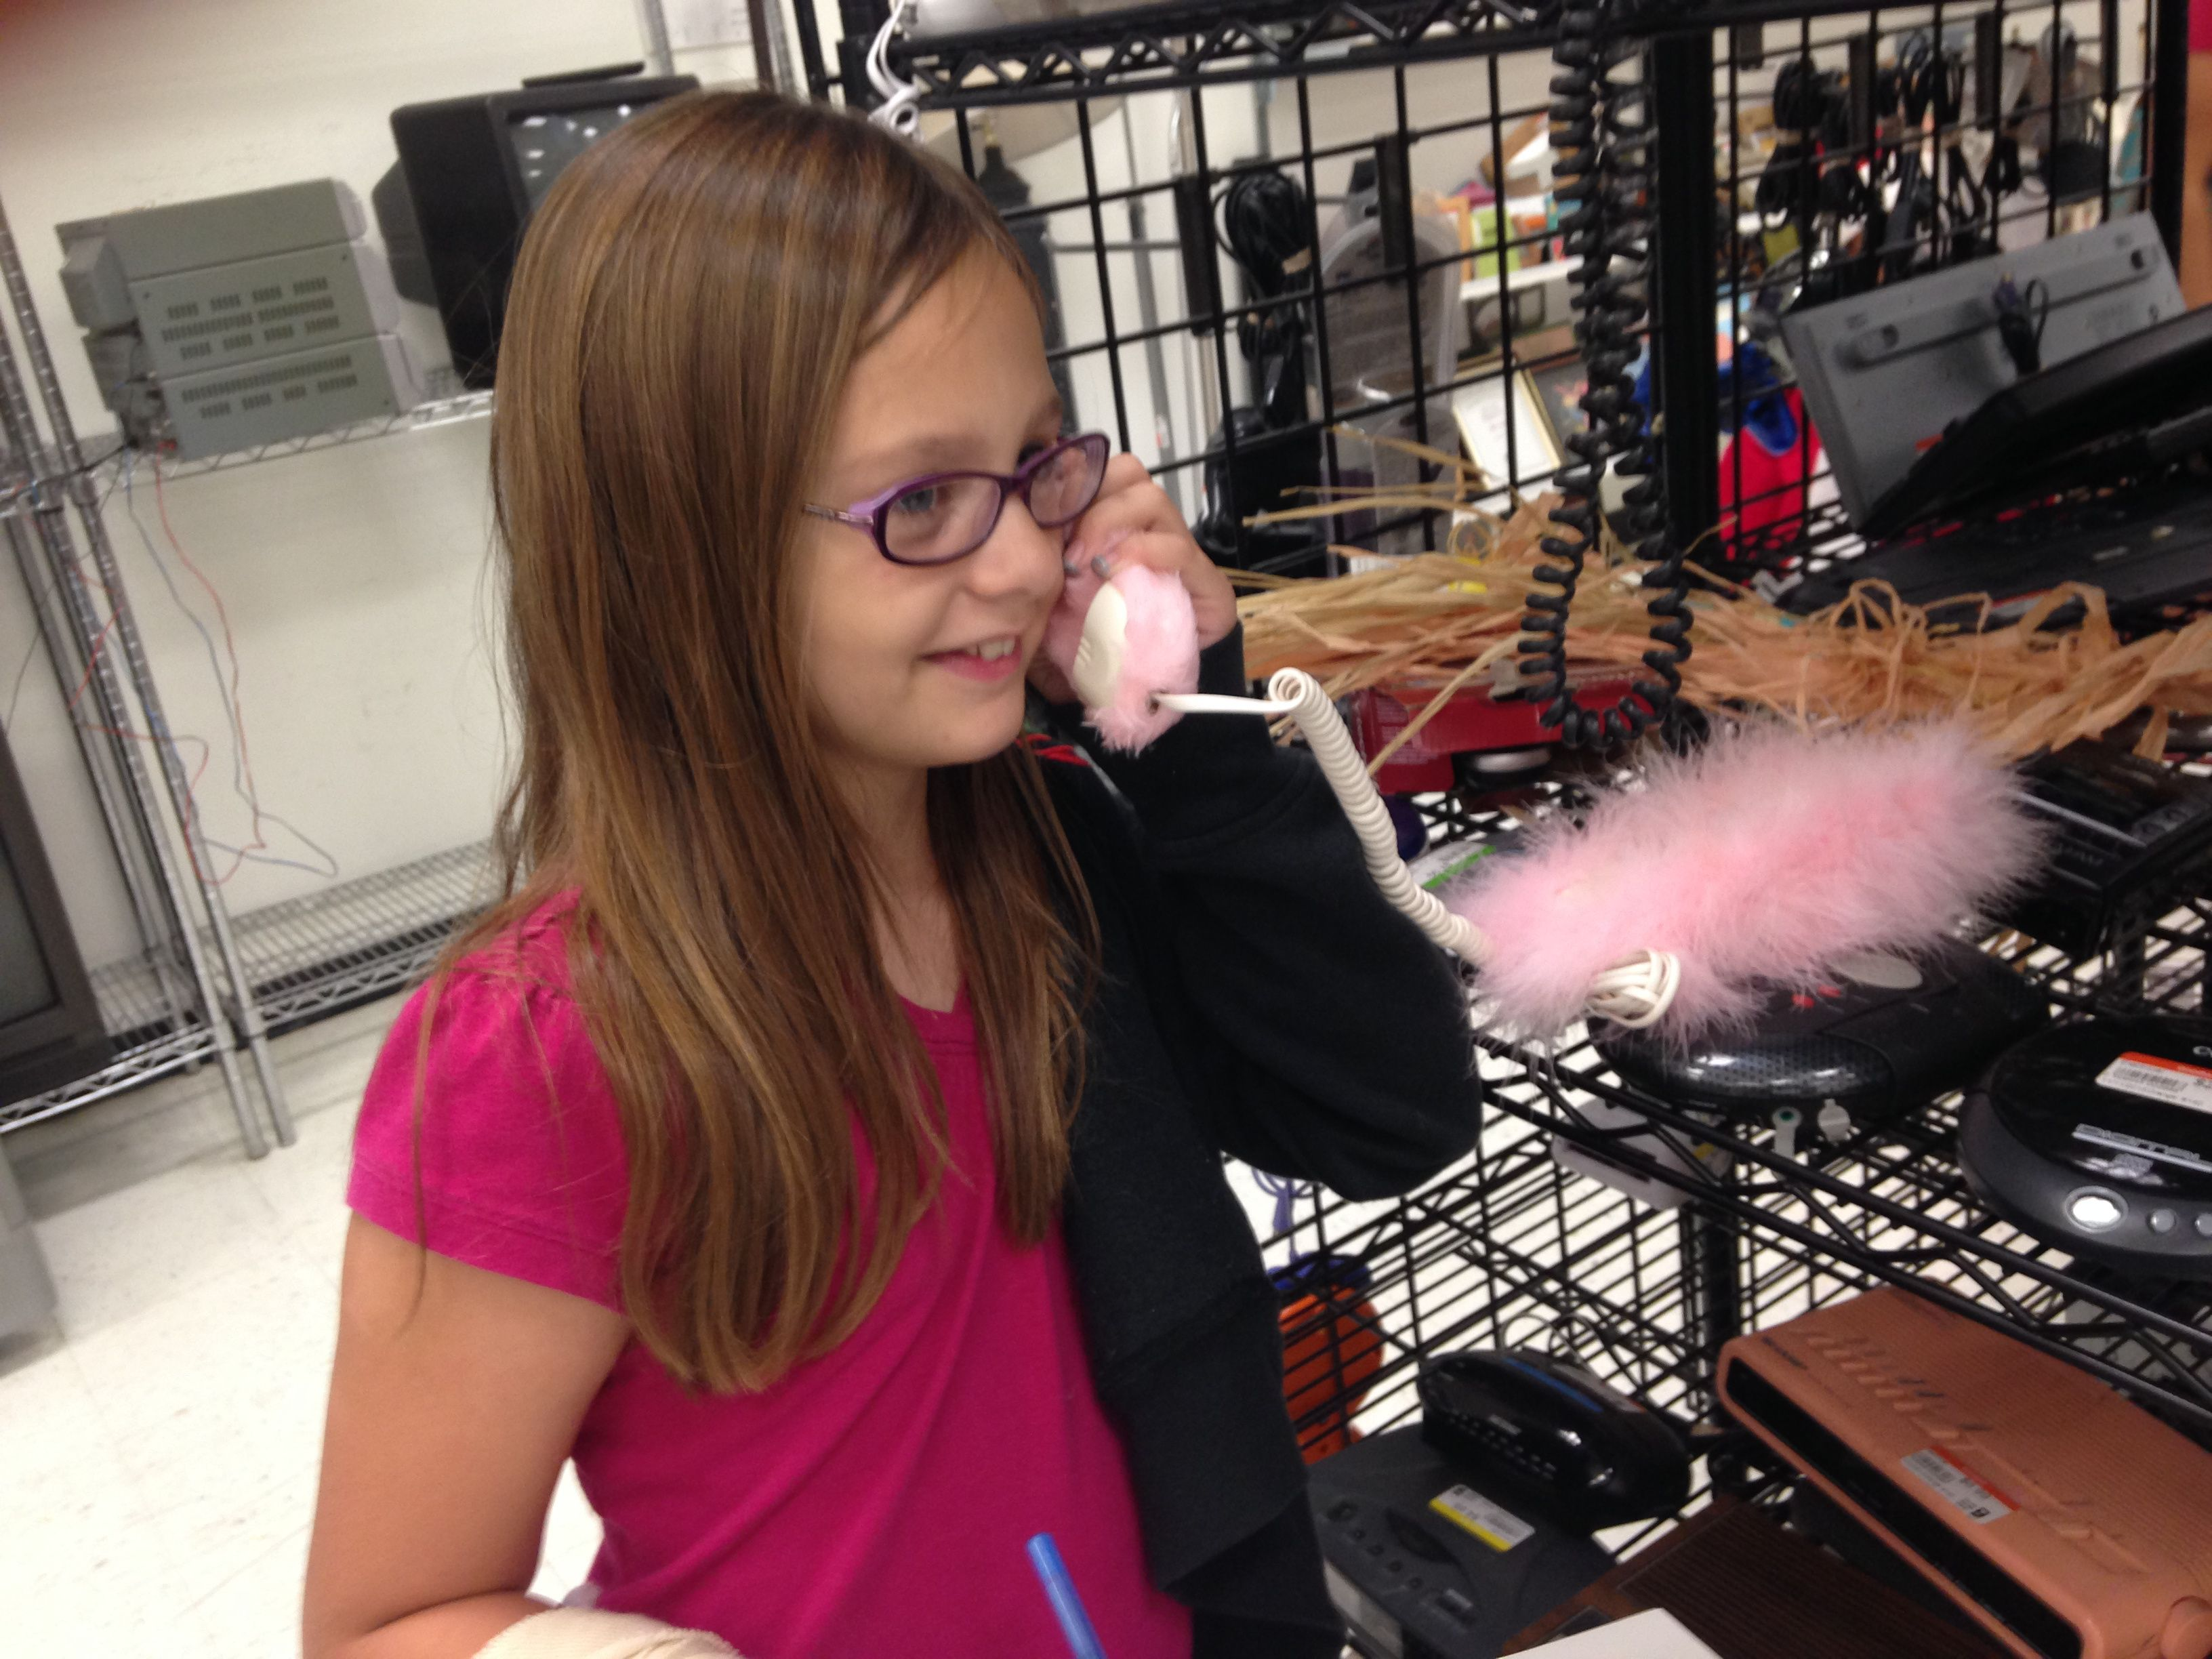 408a0294ecf9  FREE PRINTABLE  Thrift Store Scavenger Hunt! So much fun for kids! Youth